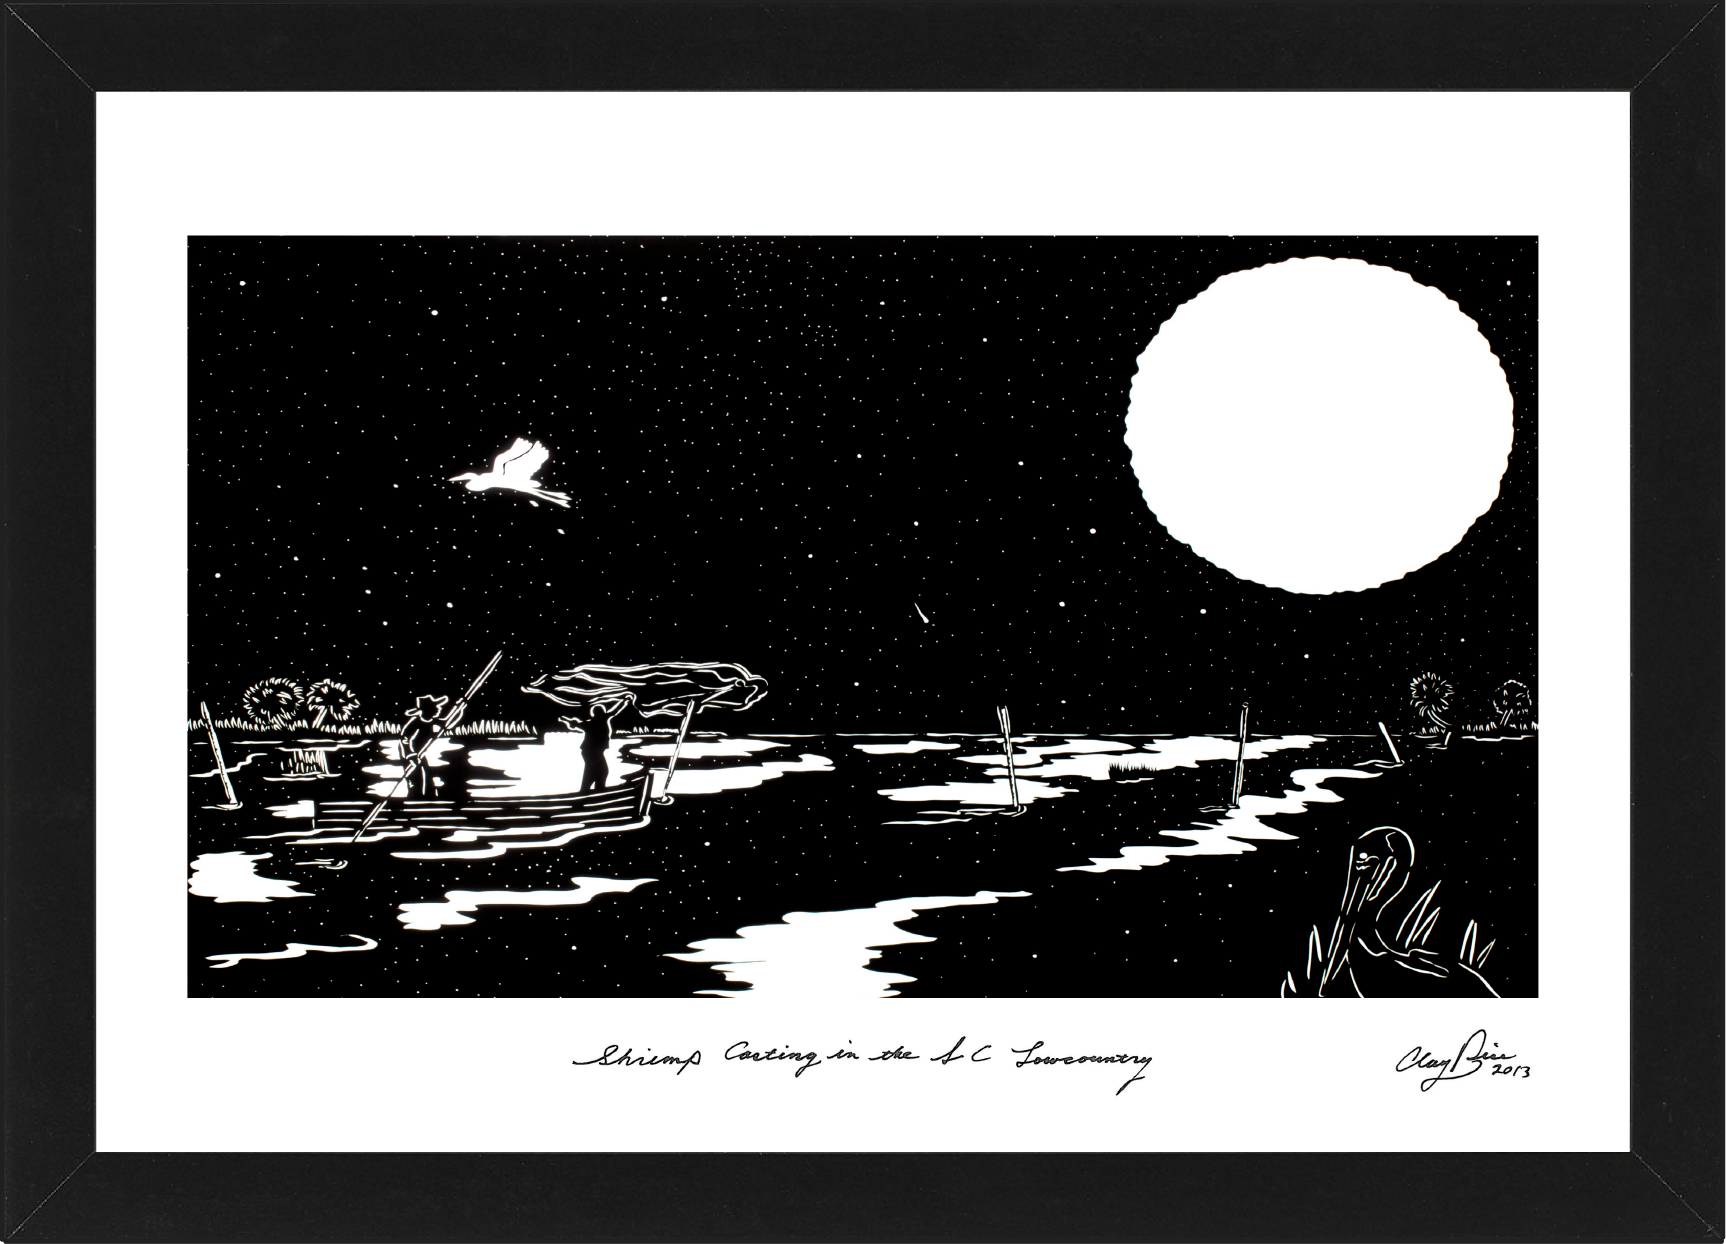 two men on a boat at night